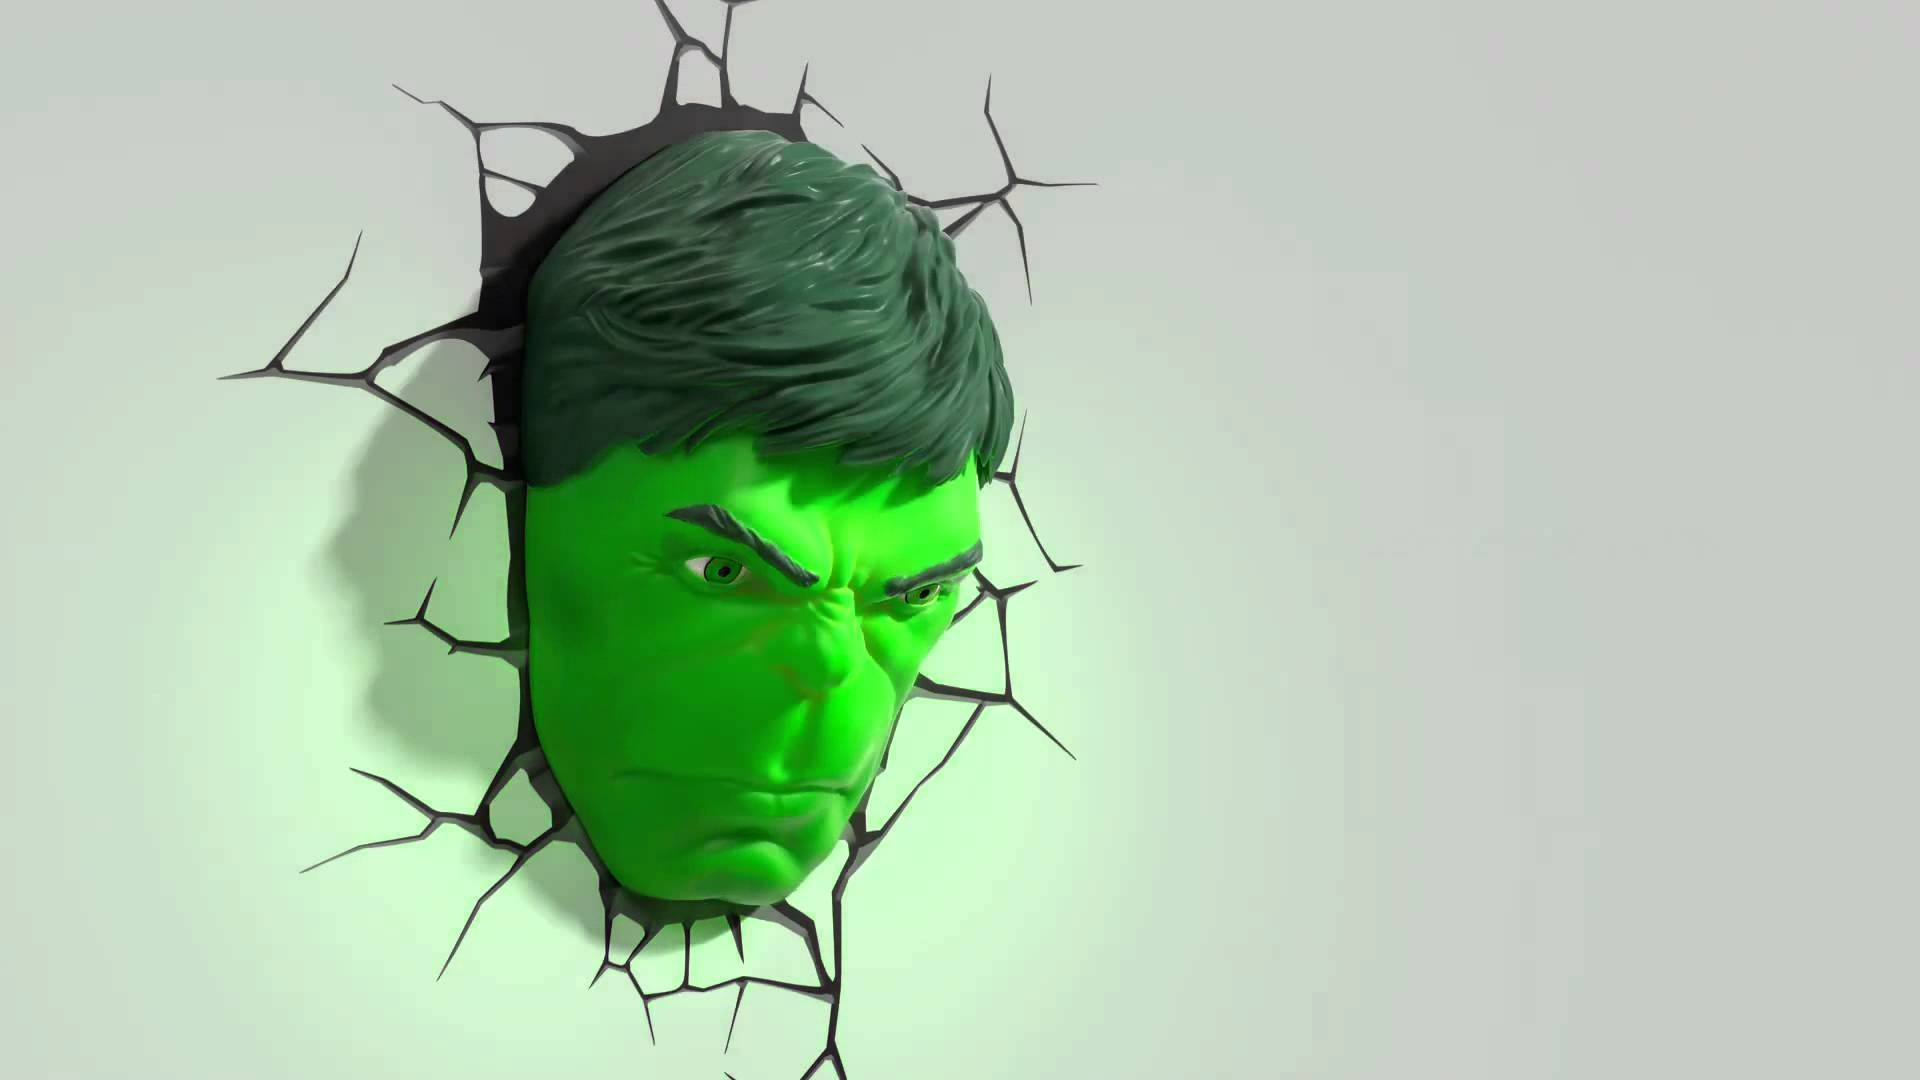 3d Fx Deco Lights Avengers Hulk Face Promotional Video – Youtube With Regard To Most Popular Hulk Hand 3d Wall Art (View 5 of 20)